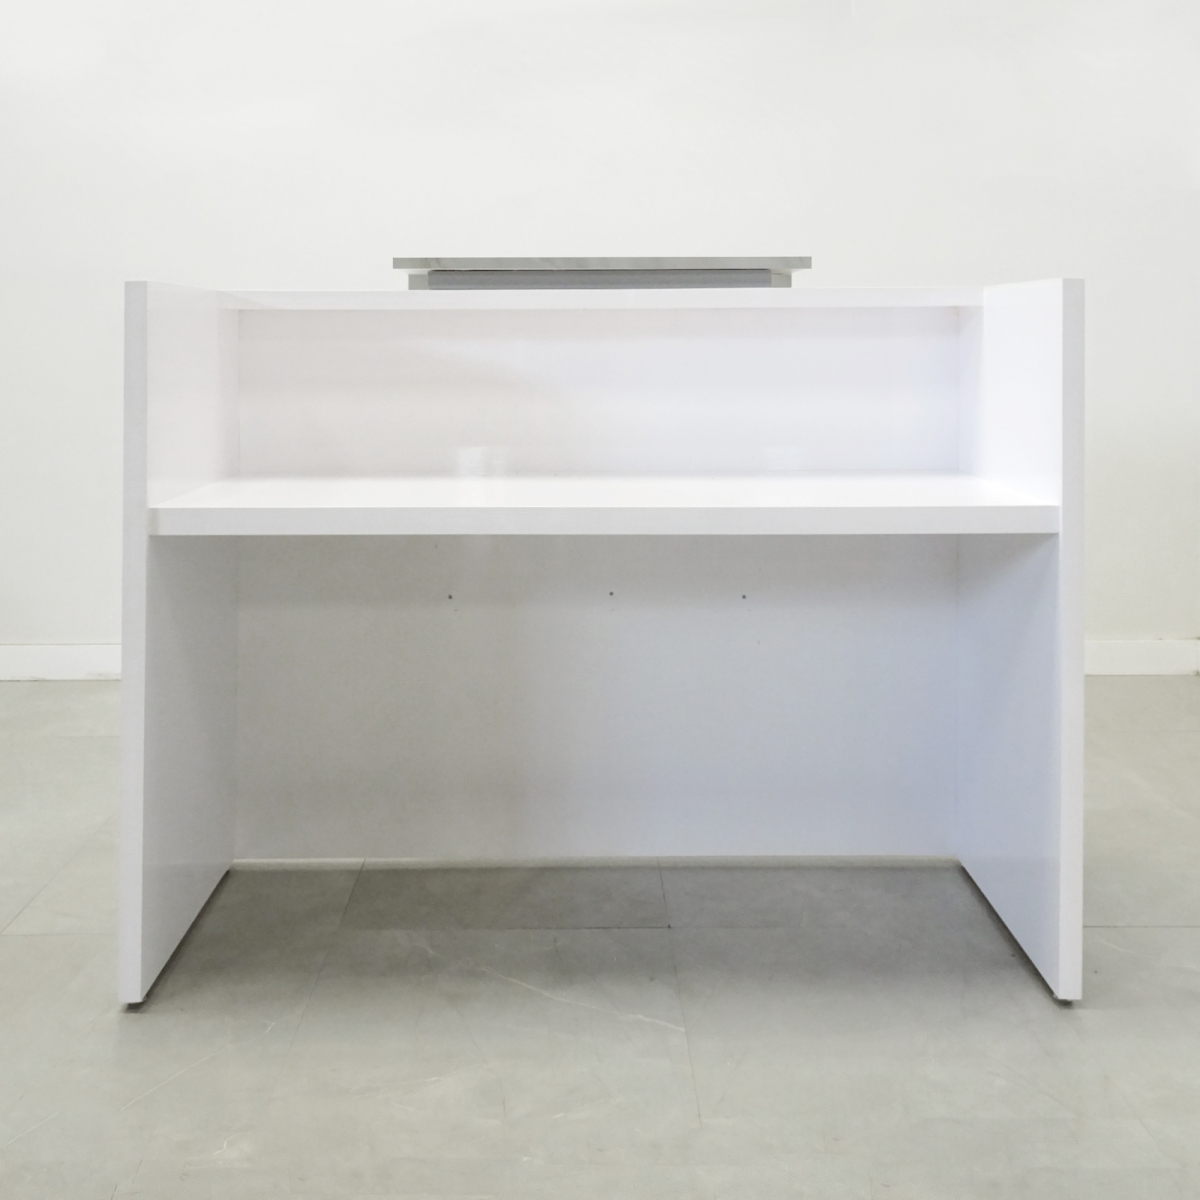 60 In. Chicago Reception Desk with White Stone